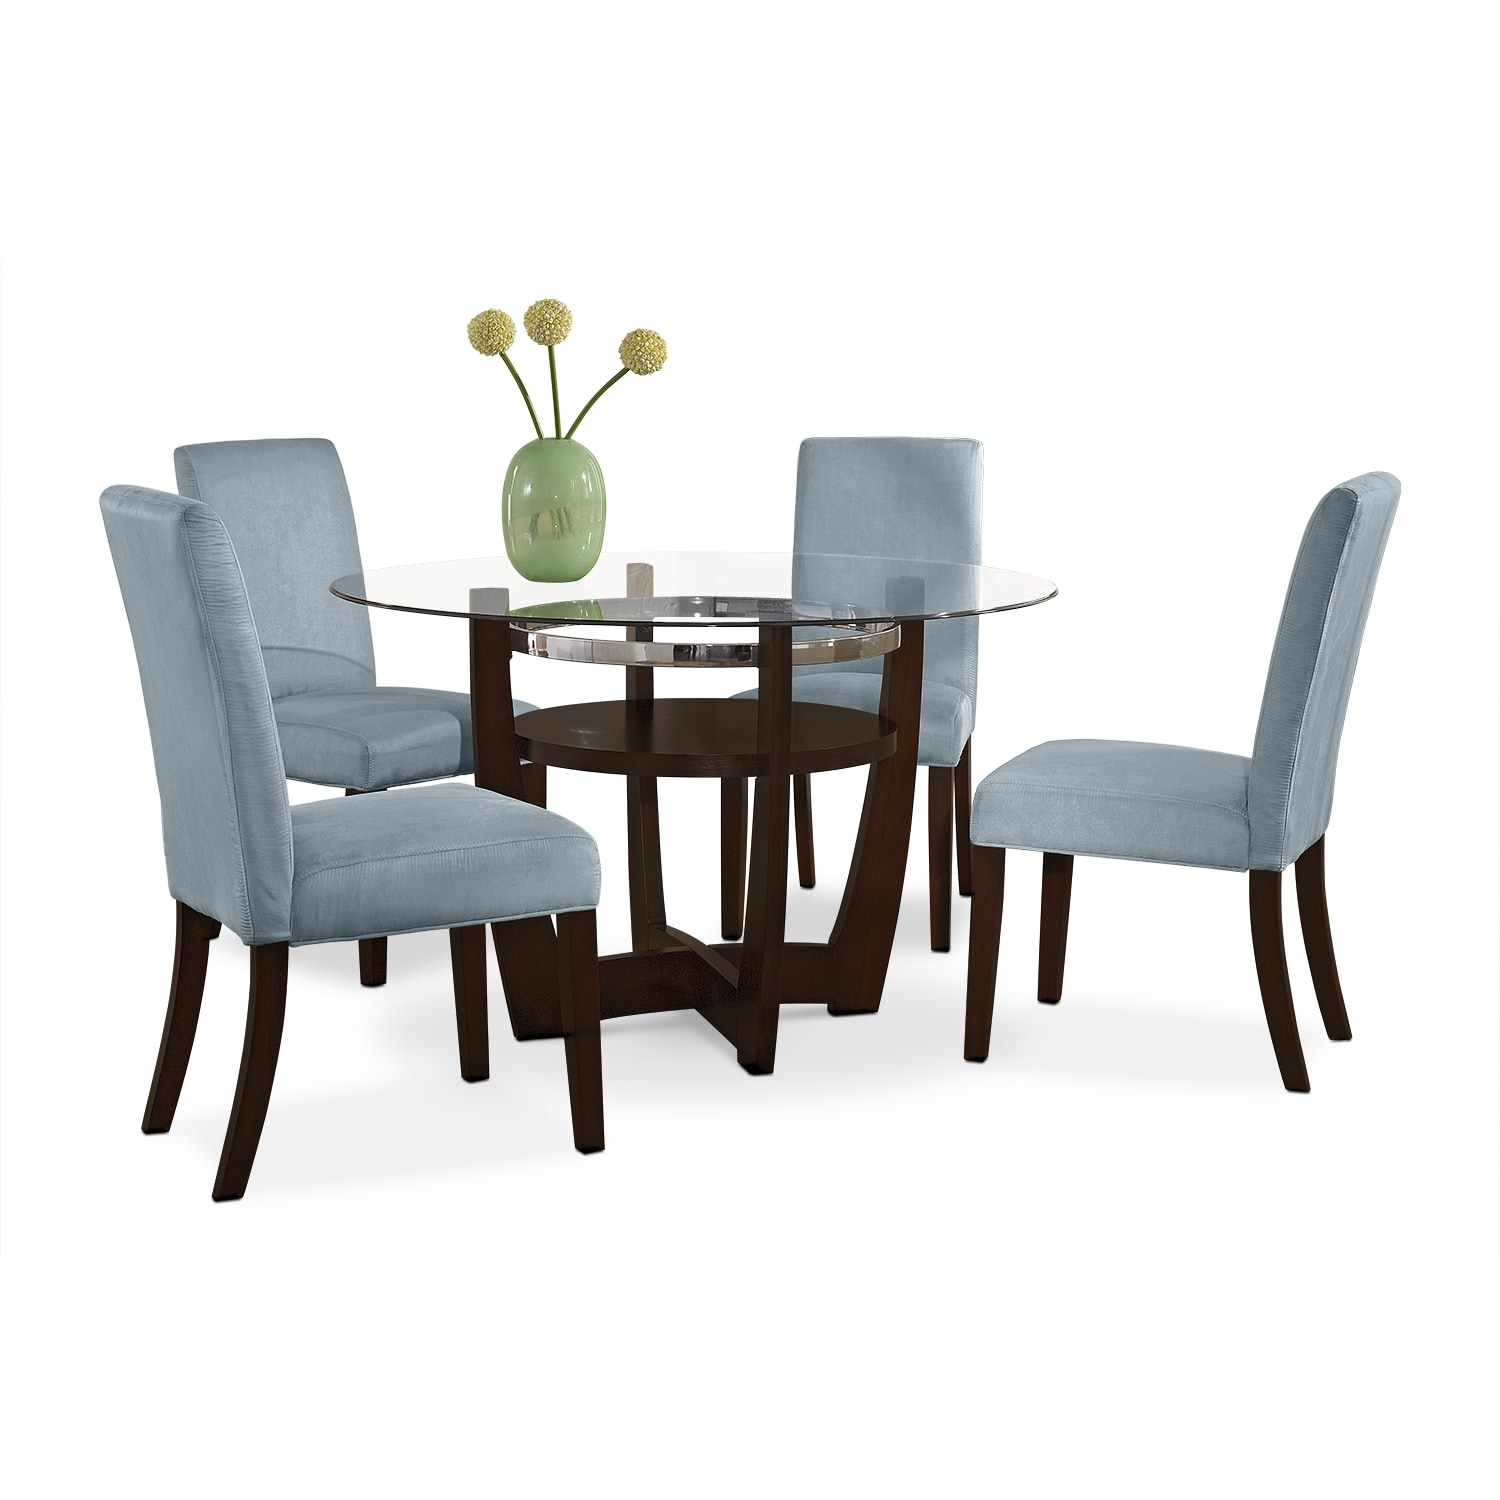 dinettes kitchen tables and more Alcove Dinette with 4 Side Chairs Aqua